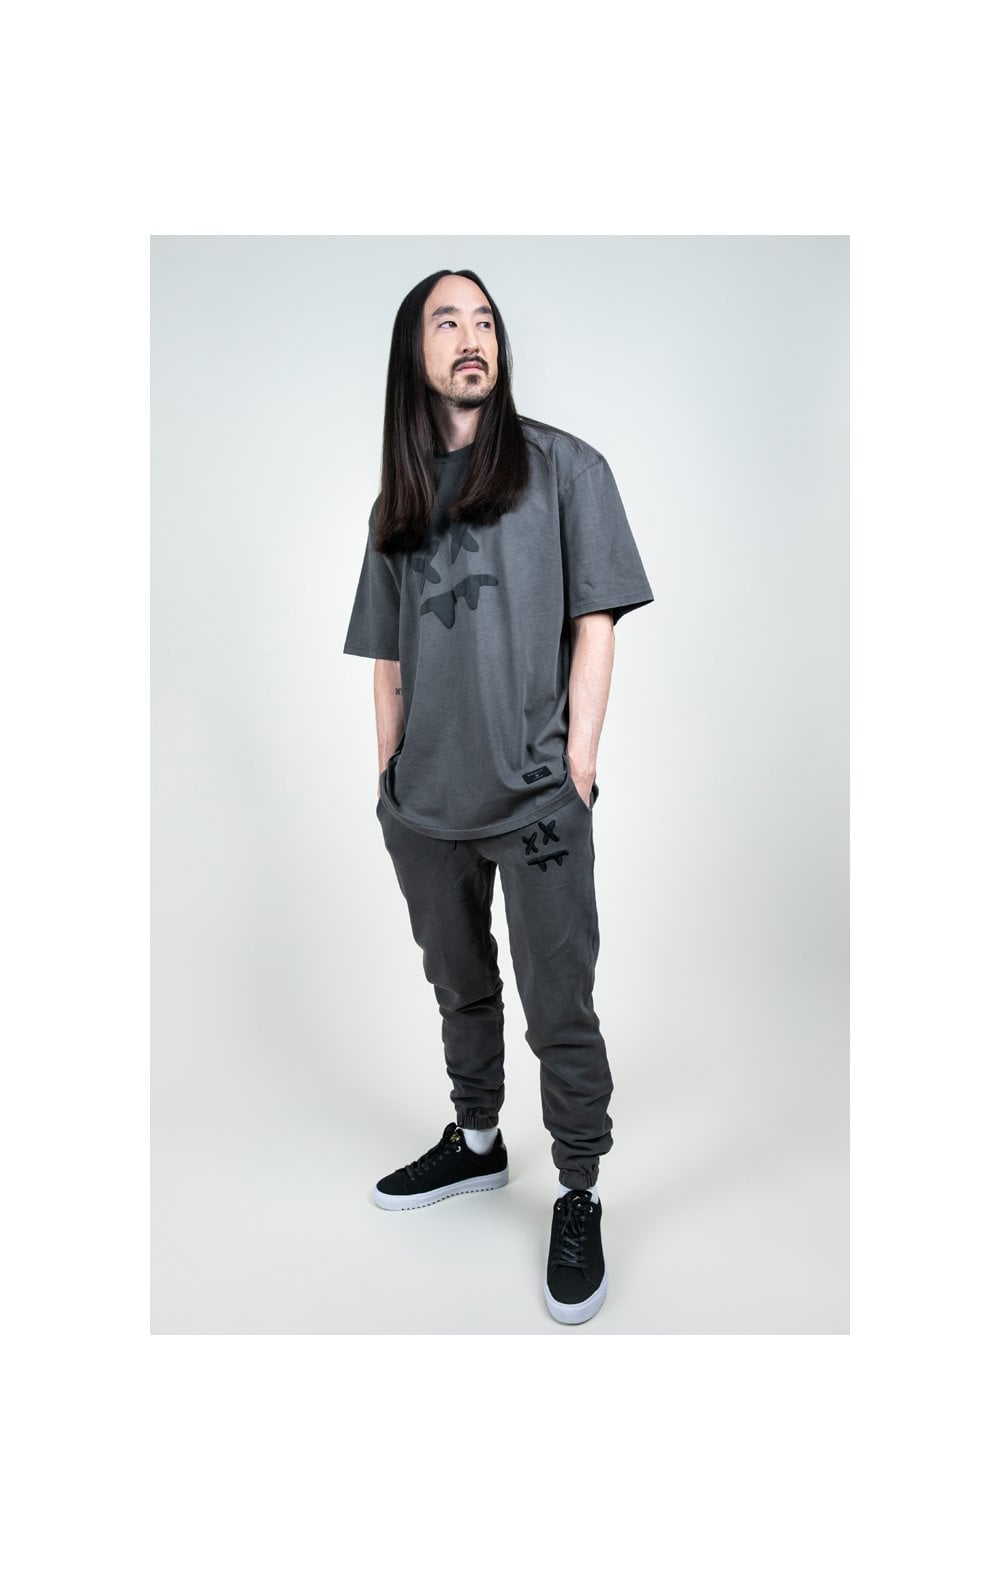 SikSilk X Steve Aoki S/S Oversize Essential Tee – Washed Grey (5)